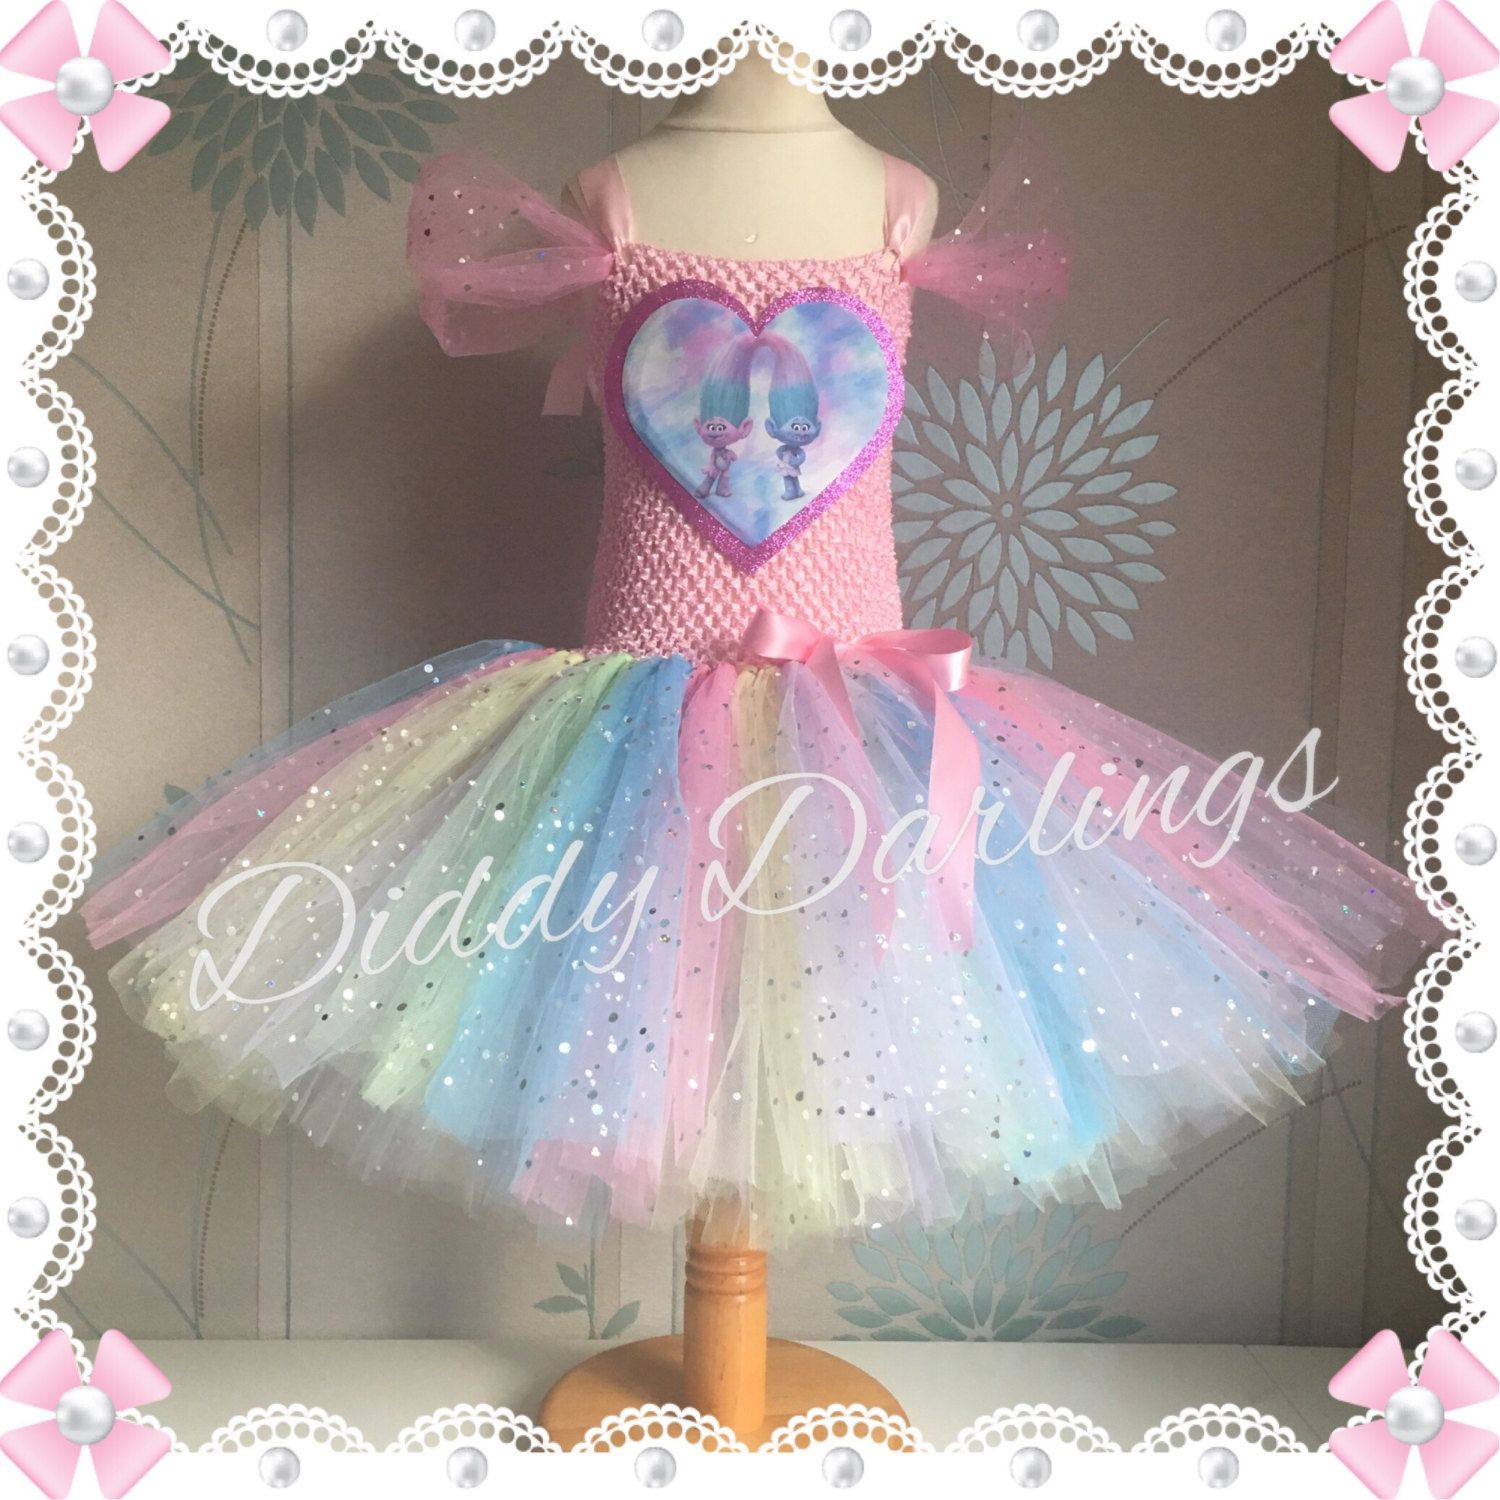 Sparkly satin and chenille tutu dress trolls costume dress trolls costume dress inspired handmade dressl sizes fully customised any characters or colours by diddydarlings on etsy solutioingenieria Choice Image